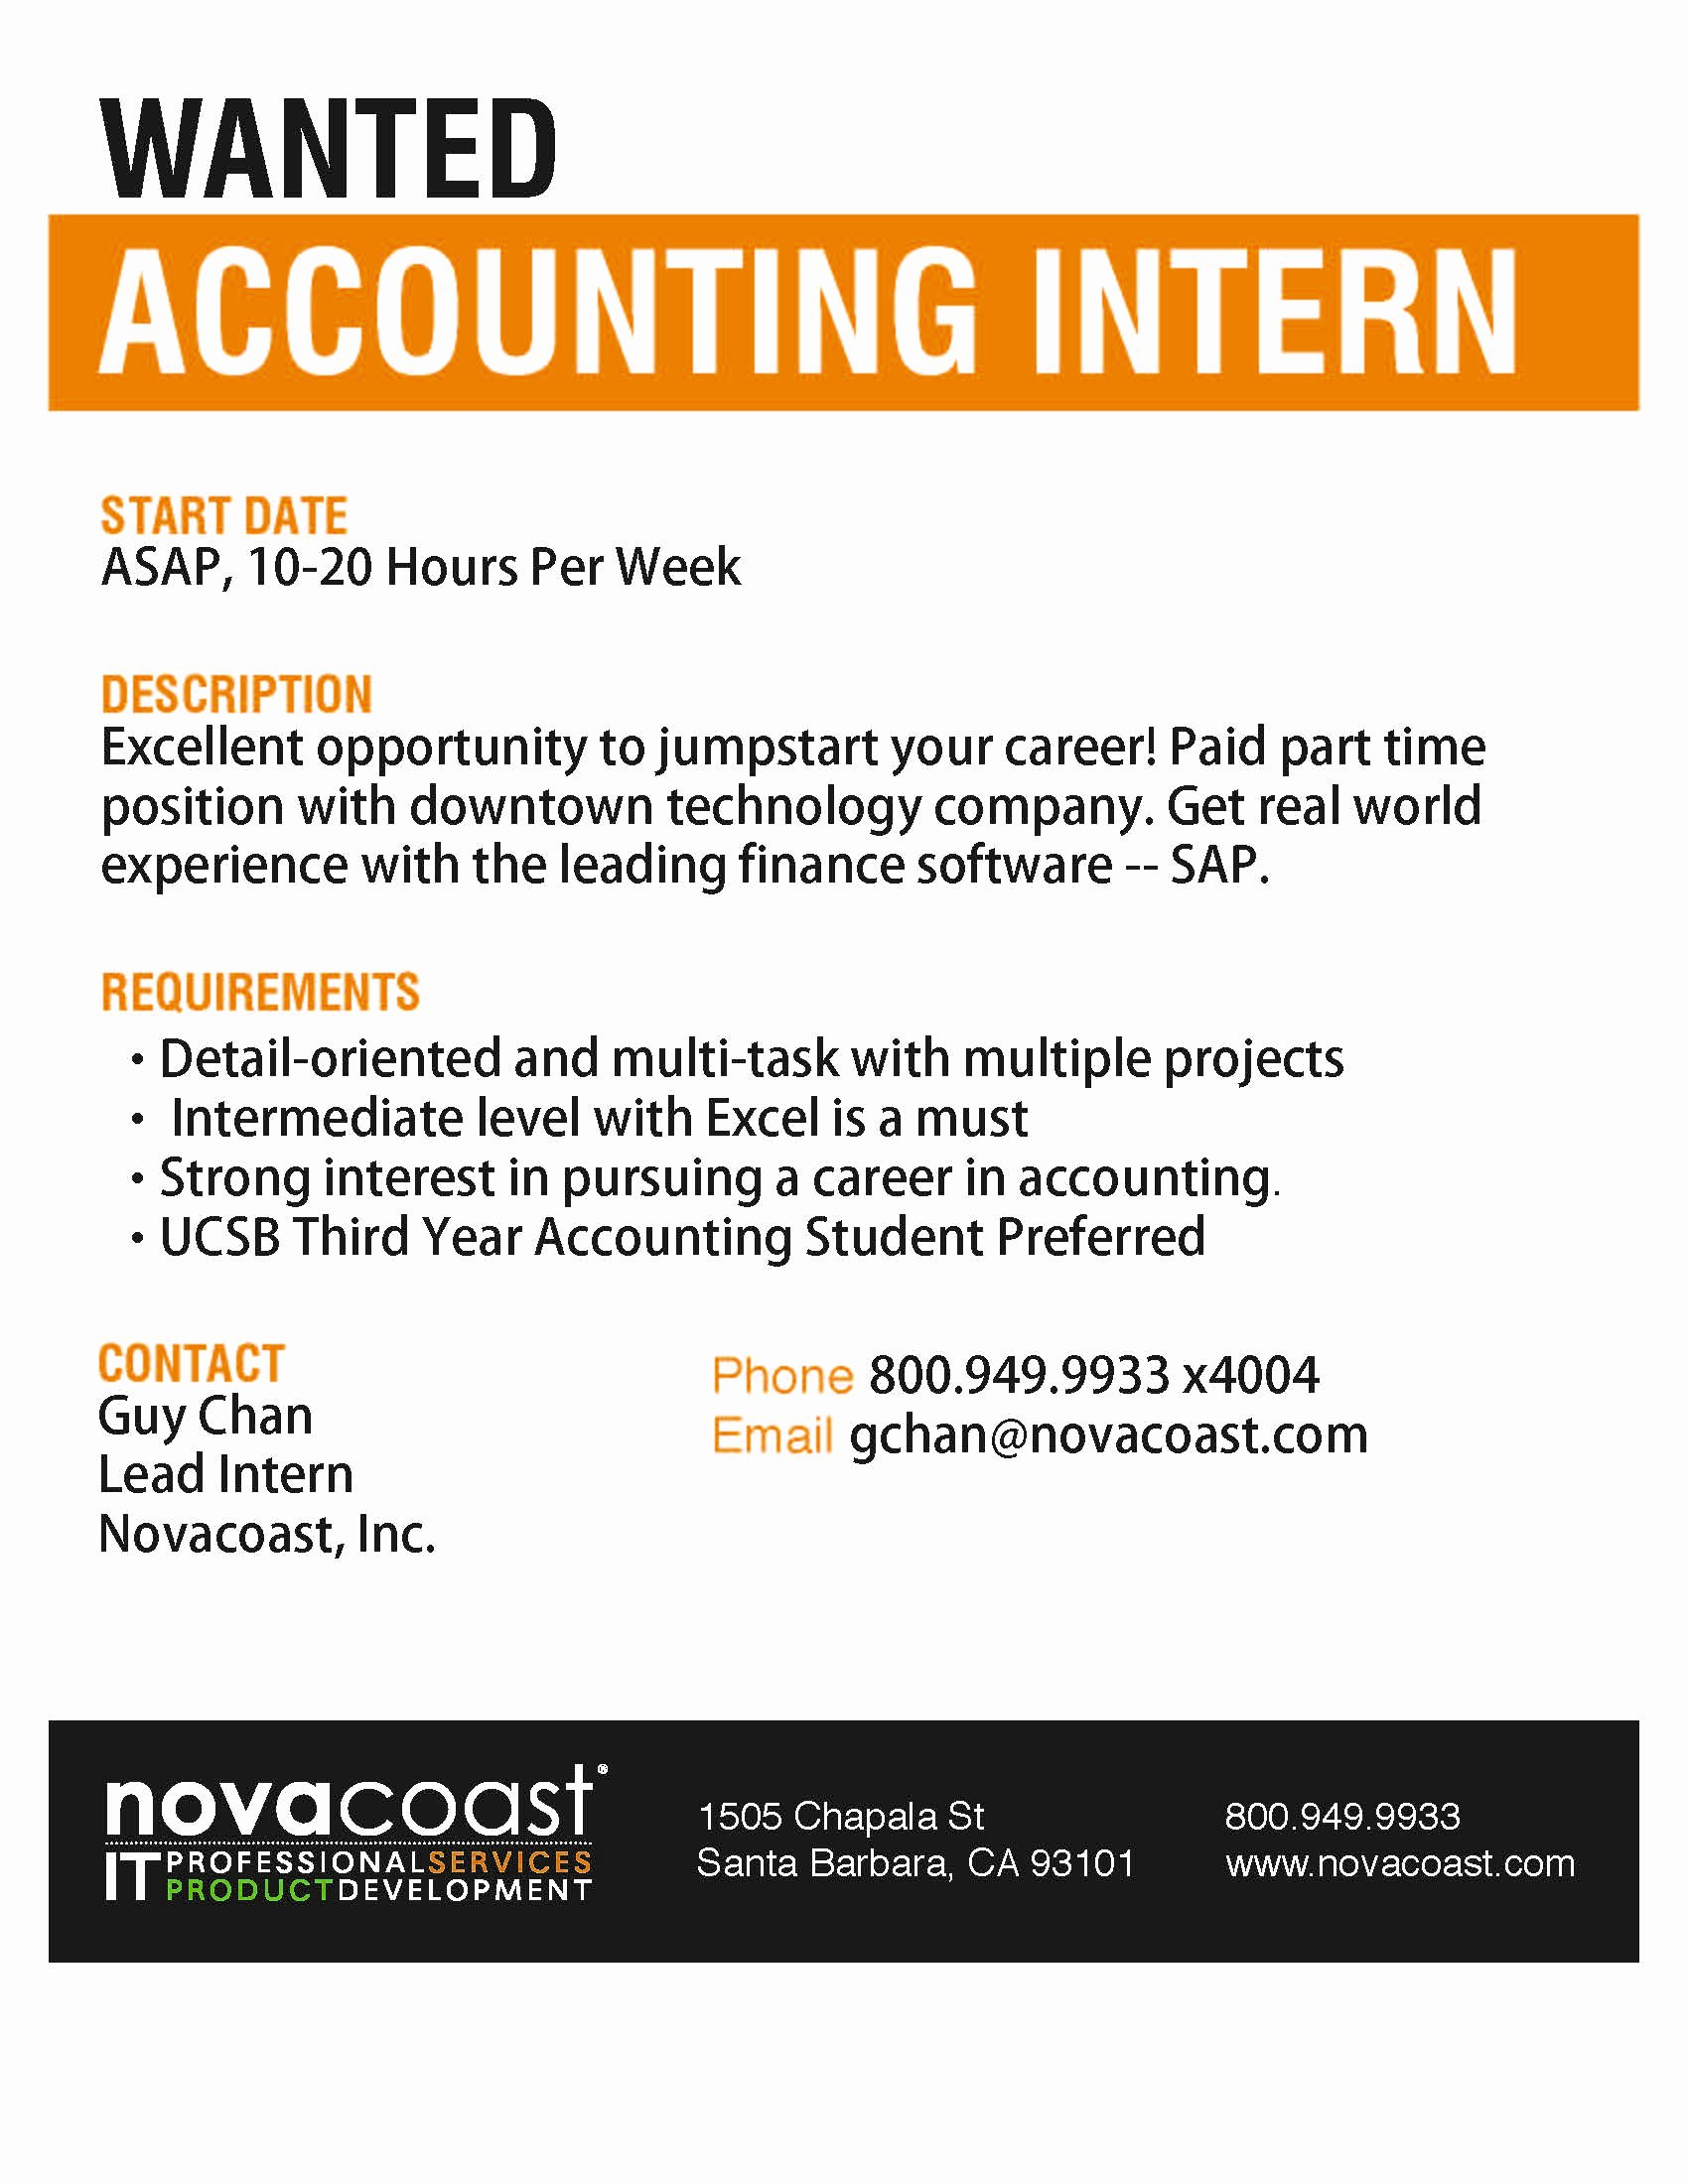 Novocoast – Wanted Accounting Intern Santa Barbara